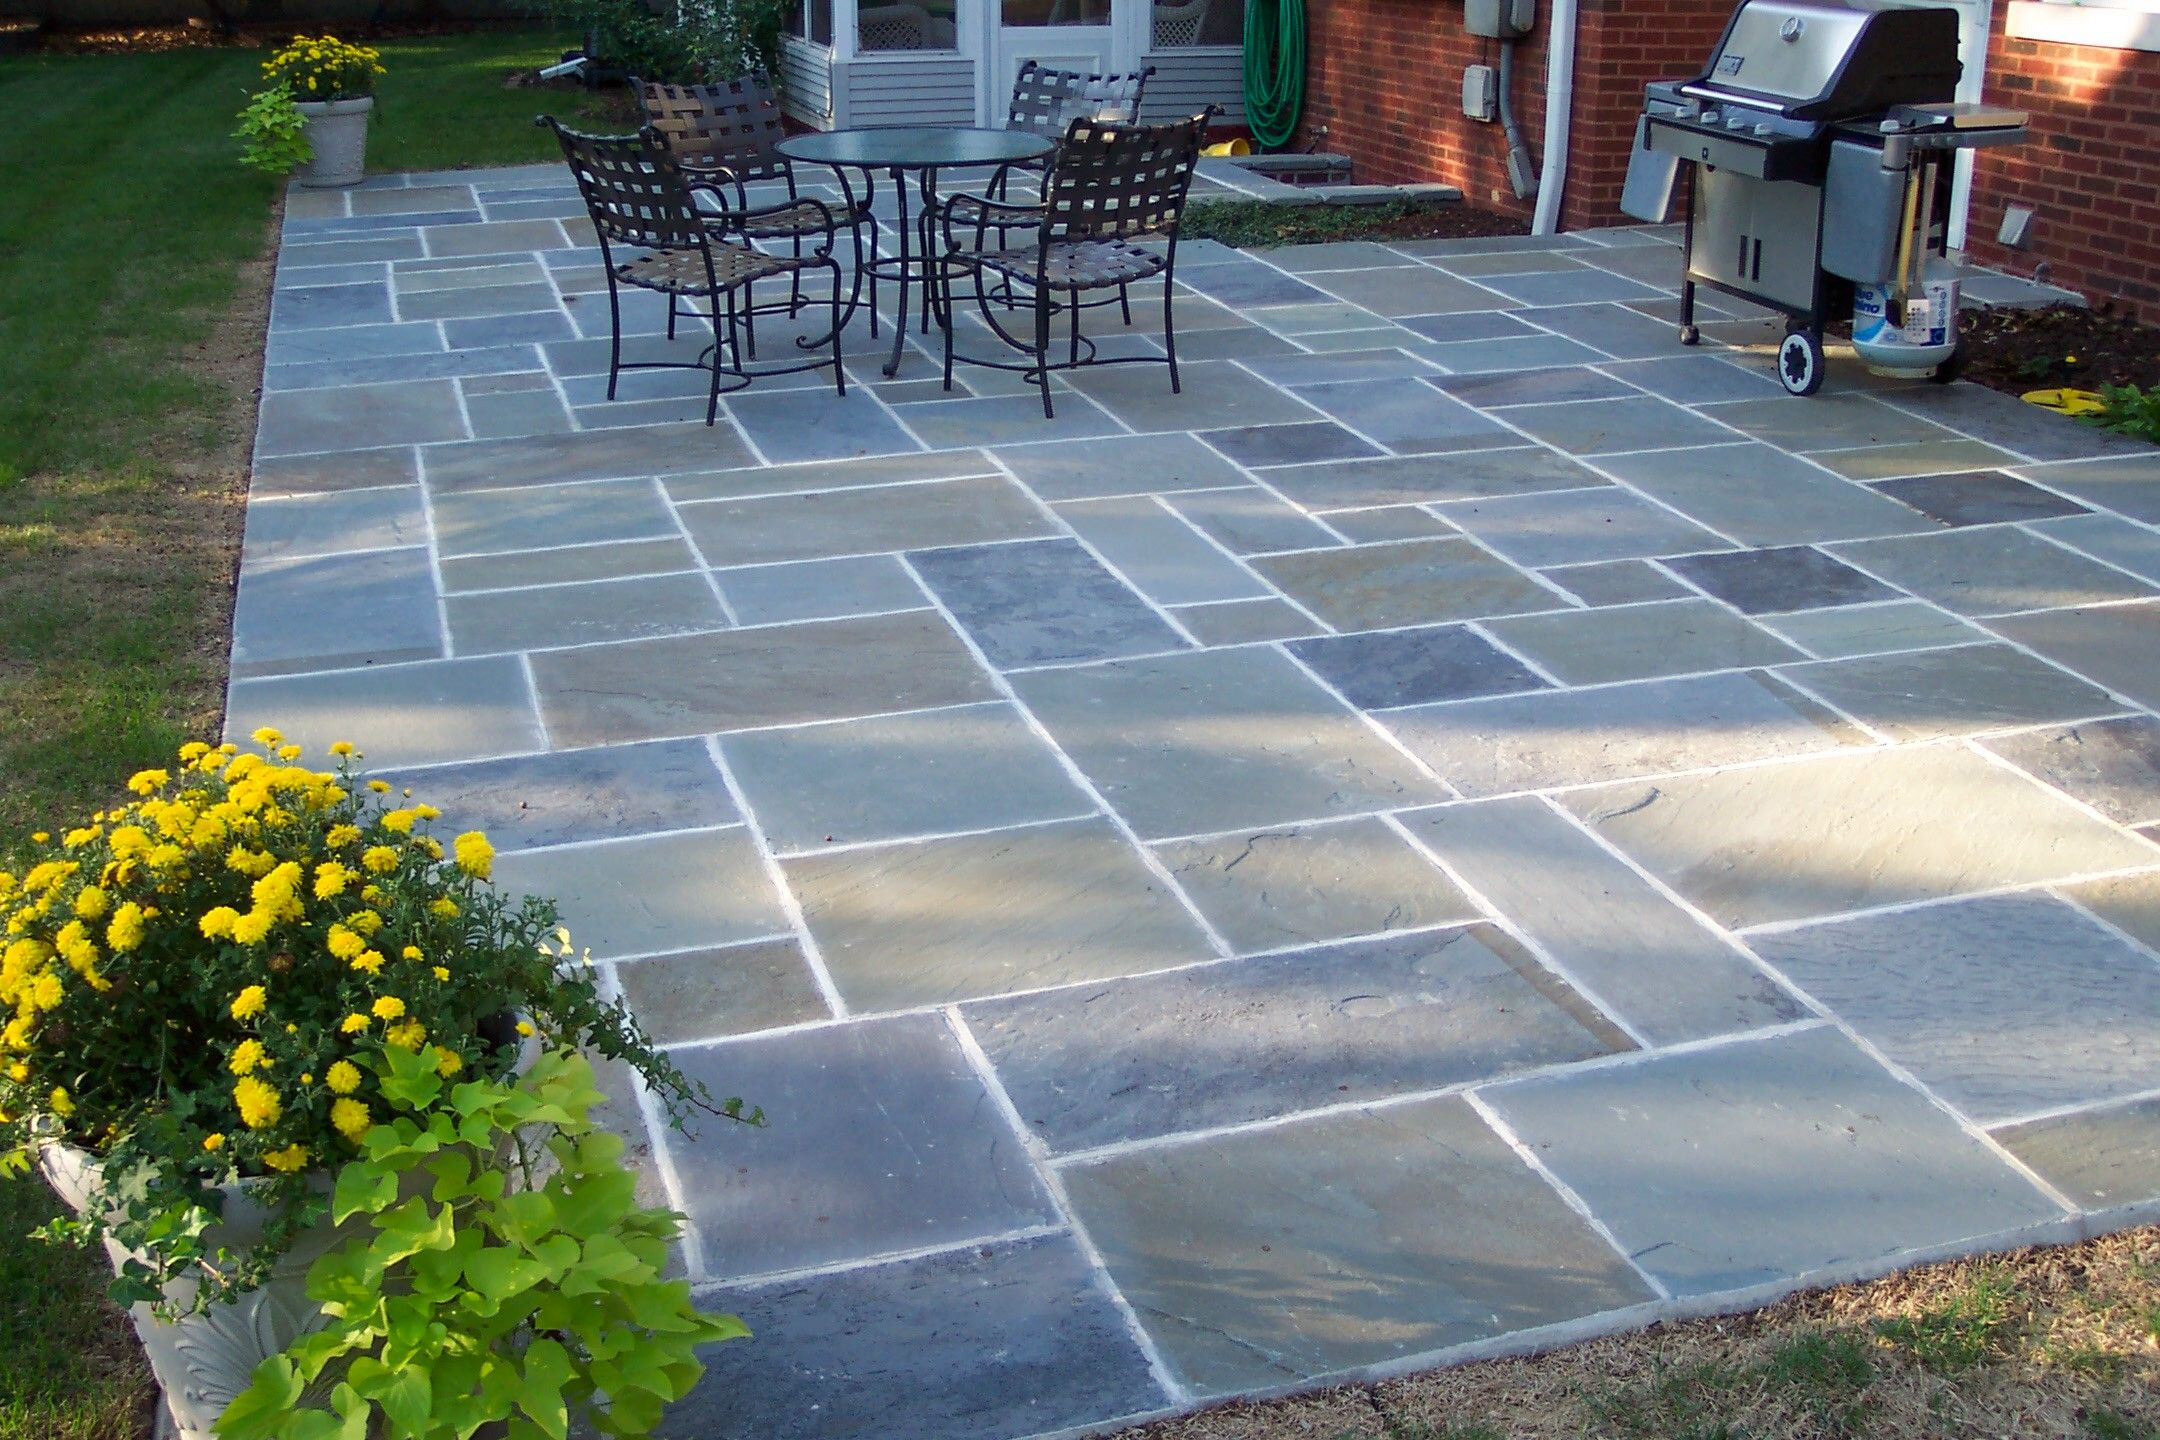 Patio Designes Bluestone Patio Design Stone Patio Designs Front Porch